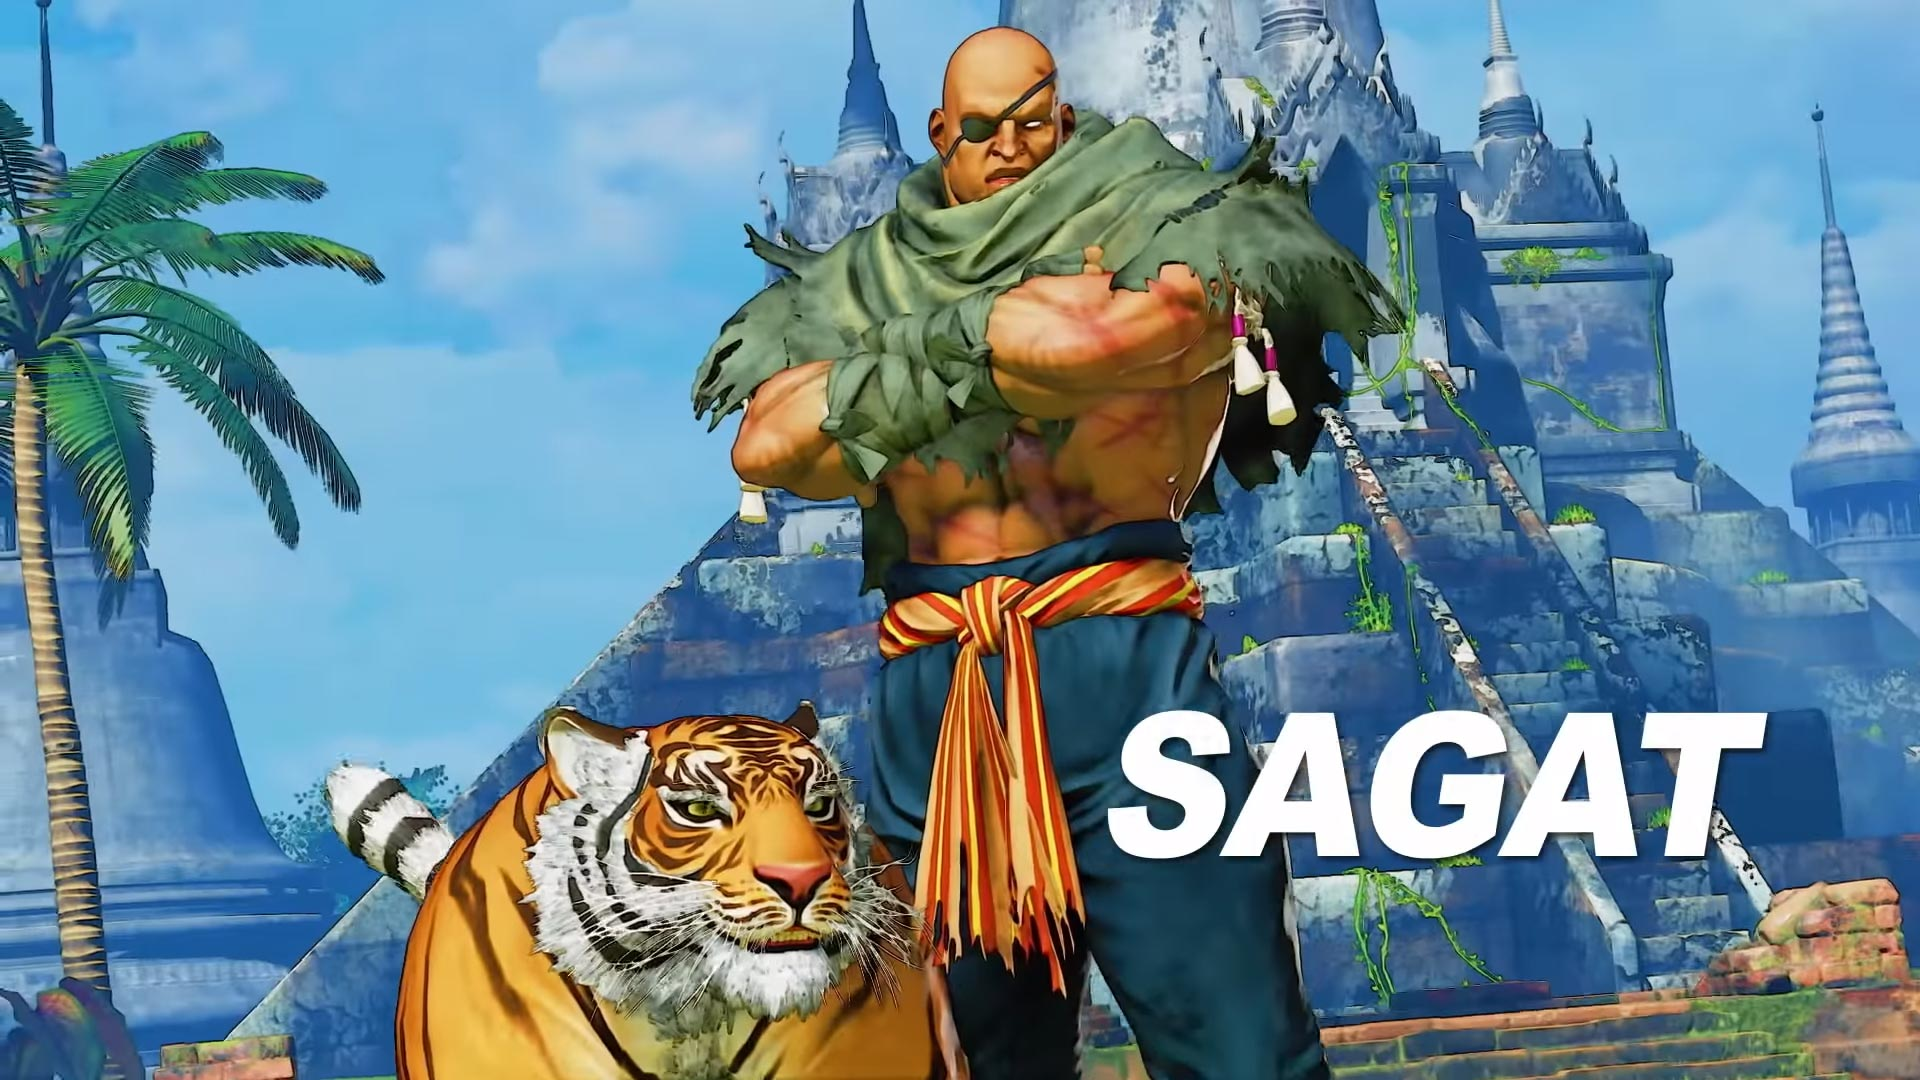 G And Sagat Street Fighter 5 Arcade Edition 13 Out Of 15 Image